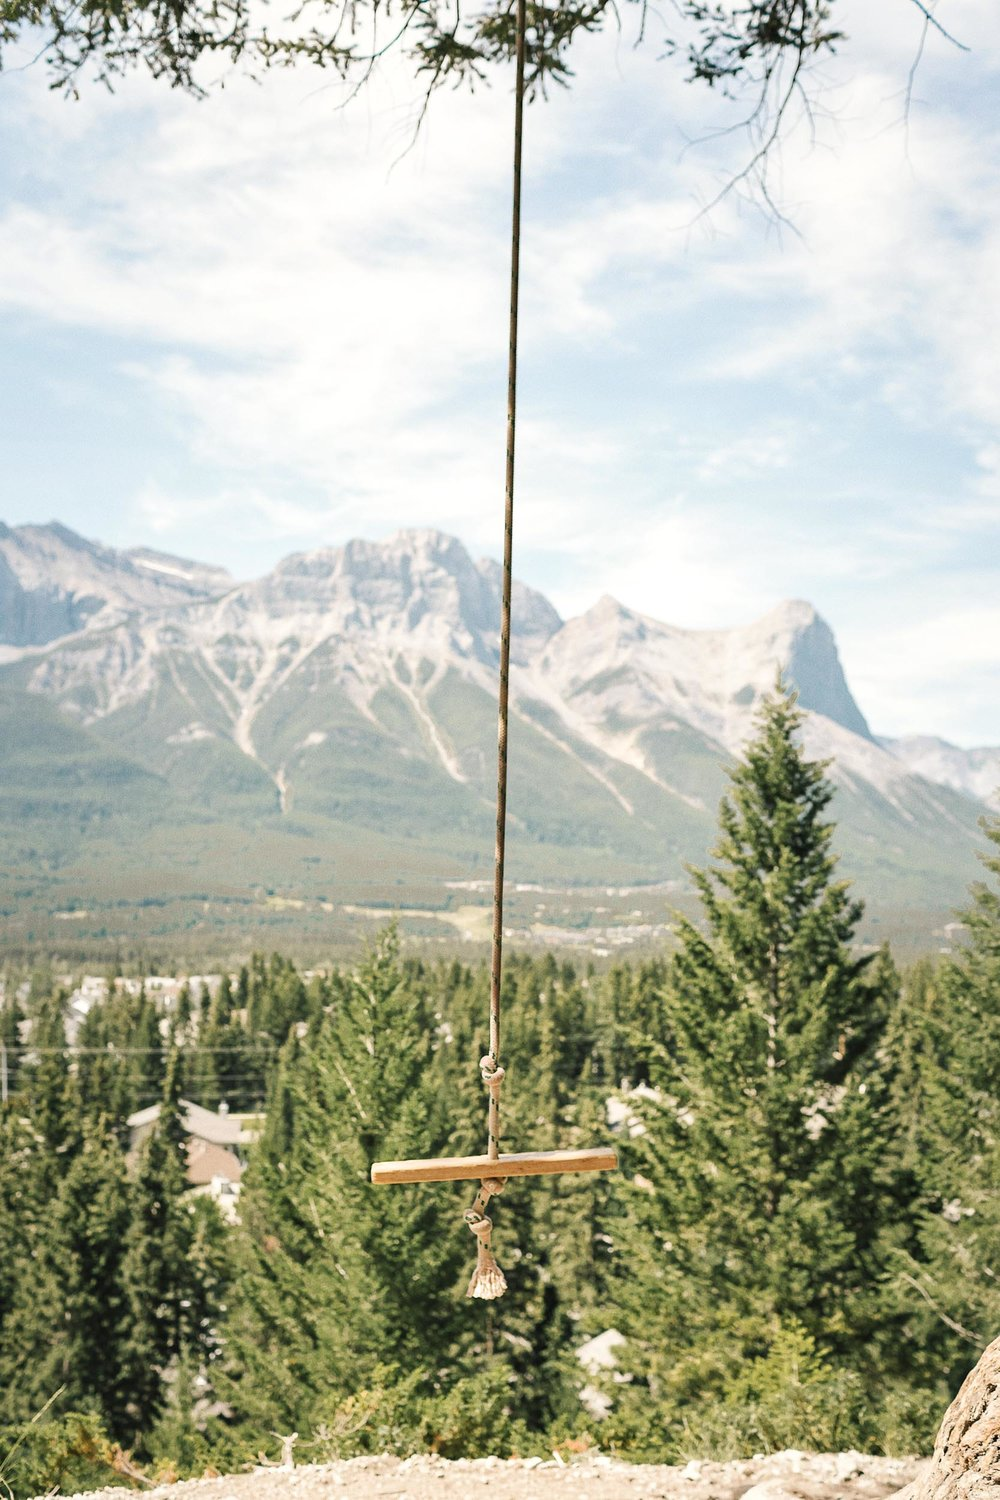 A rope swing with beautiful views in Banff National Park